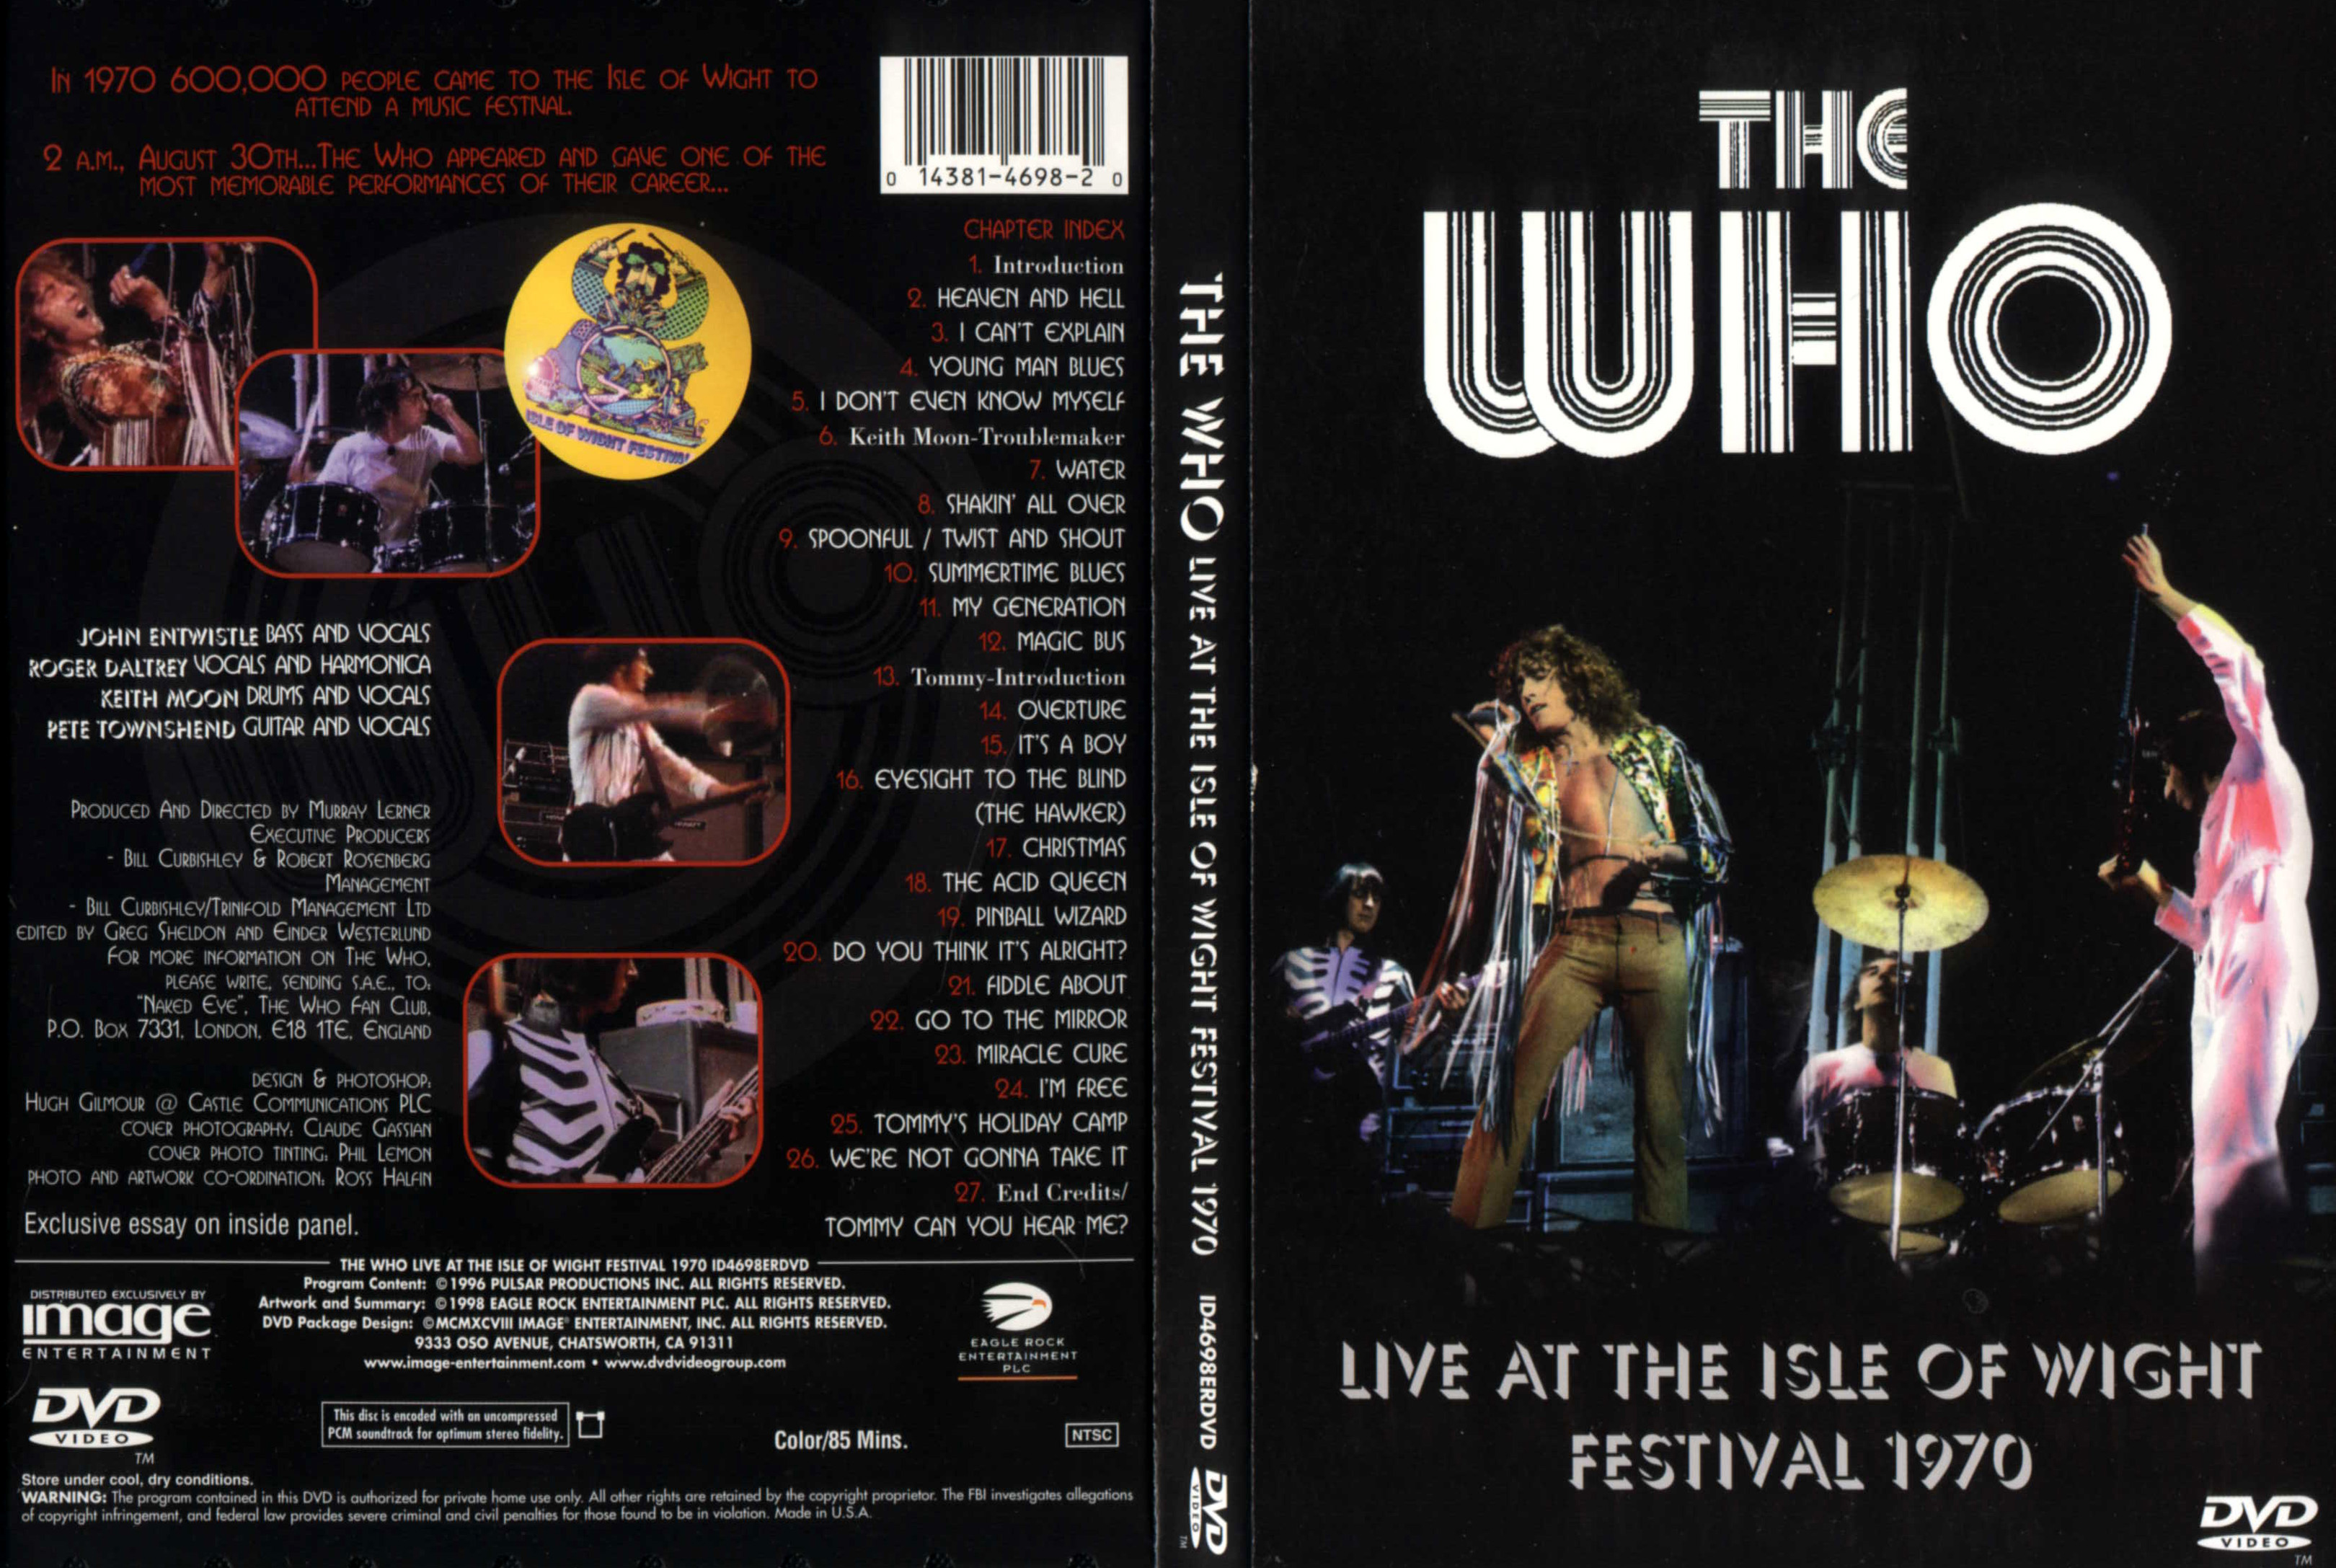 http://www.fharaoncovers.com/covers/The_who_live_at_the_isle_of_wight_festival_1970.jpg